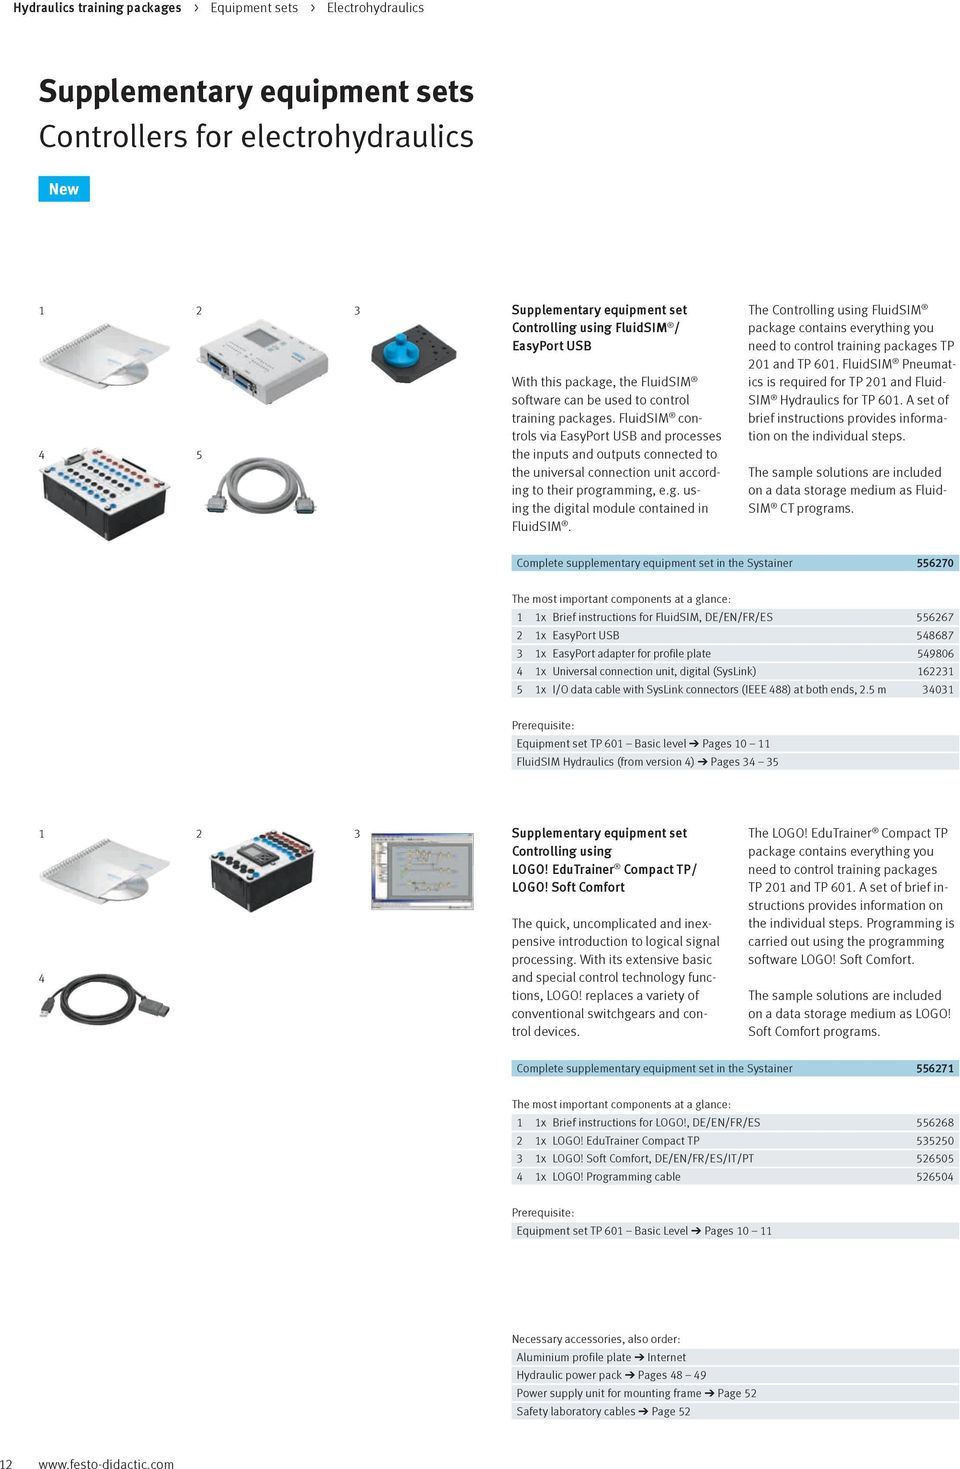 Hydraulics vocational and further training with festo didactic pdf fluidsim controls via easyport usb and processes the inputs and outputs connected to the universal connection buycottarizona Image collections